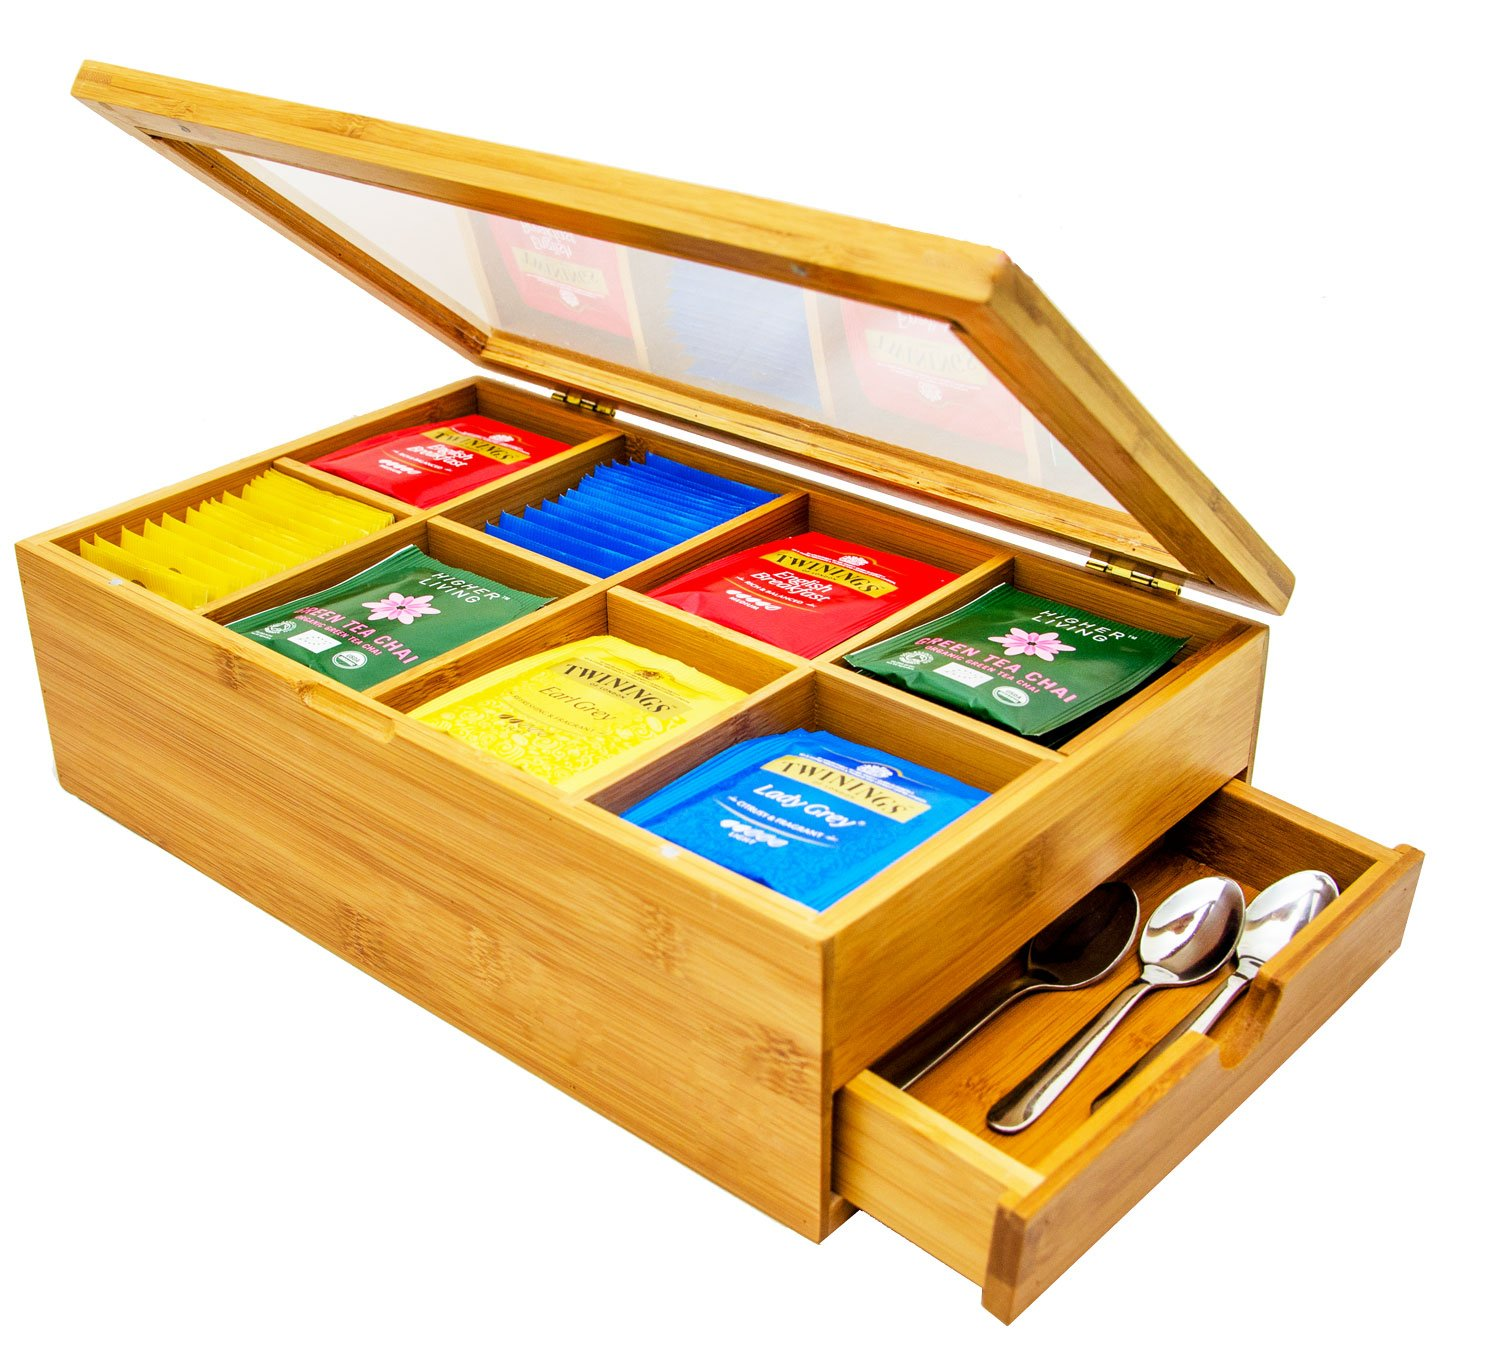 Tea Box 100% Bamboo Tea Box Chest Organizer With Slide Out Drawer, 8 Storage Compartments Clear Shatterproof Hinged Lid By Sugarman Creations by Sugarman Creations (Image #1)